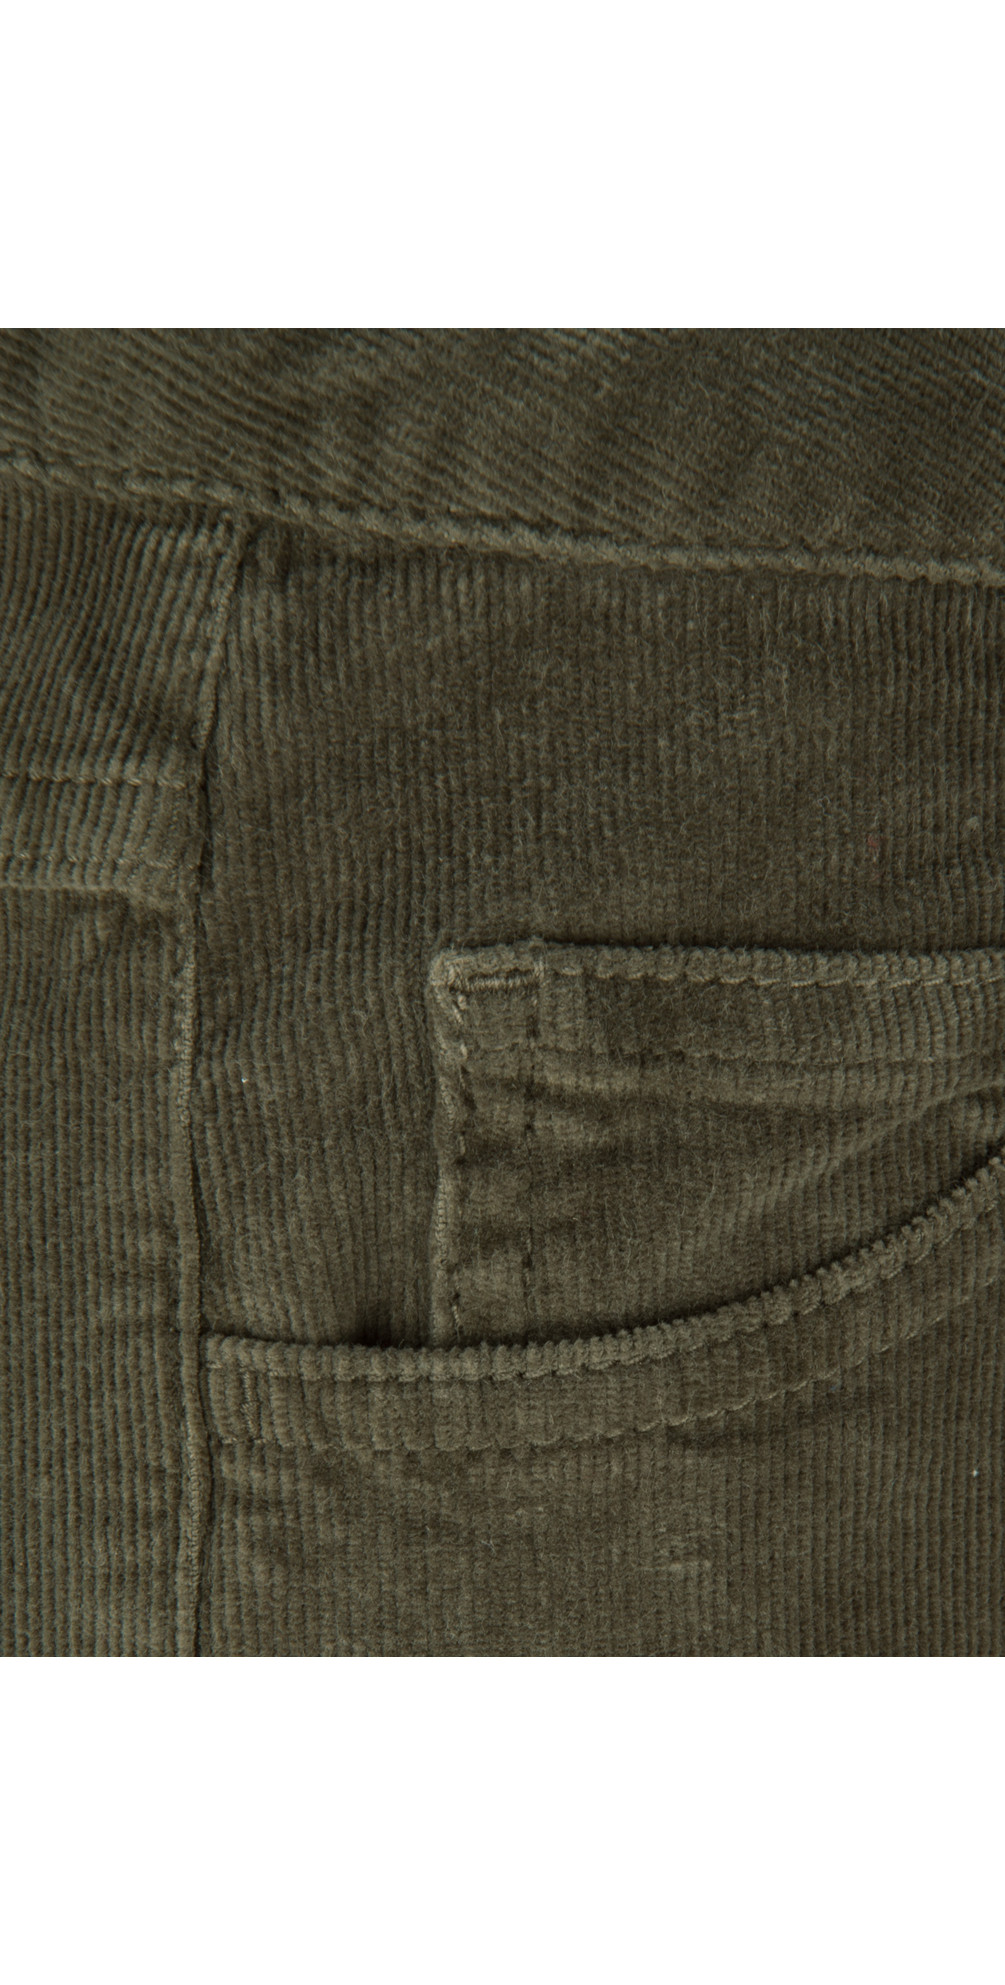 Foret Cord Trouser main image